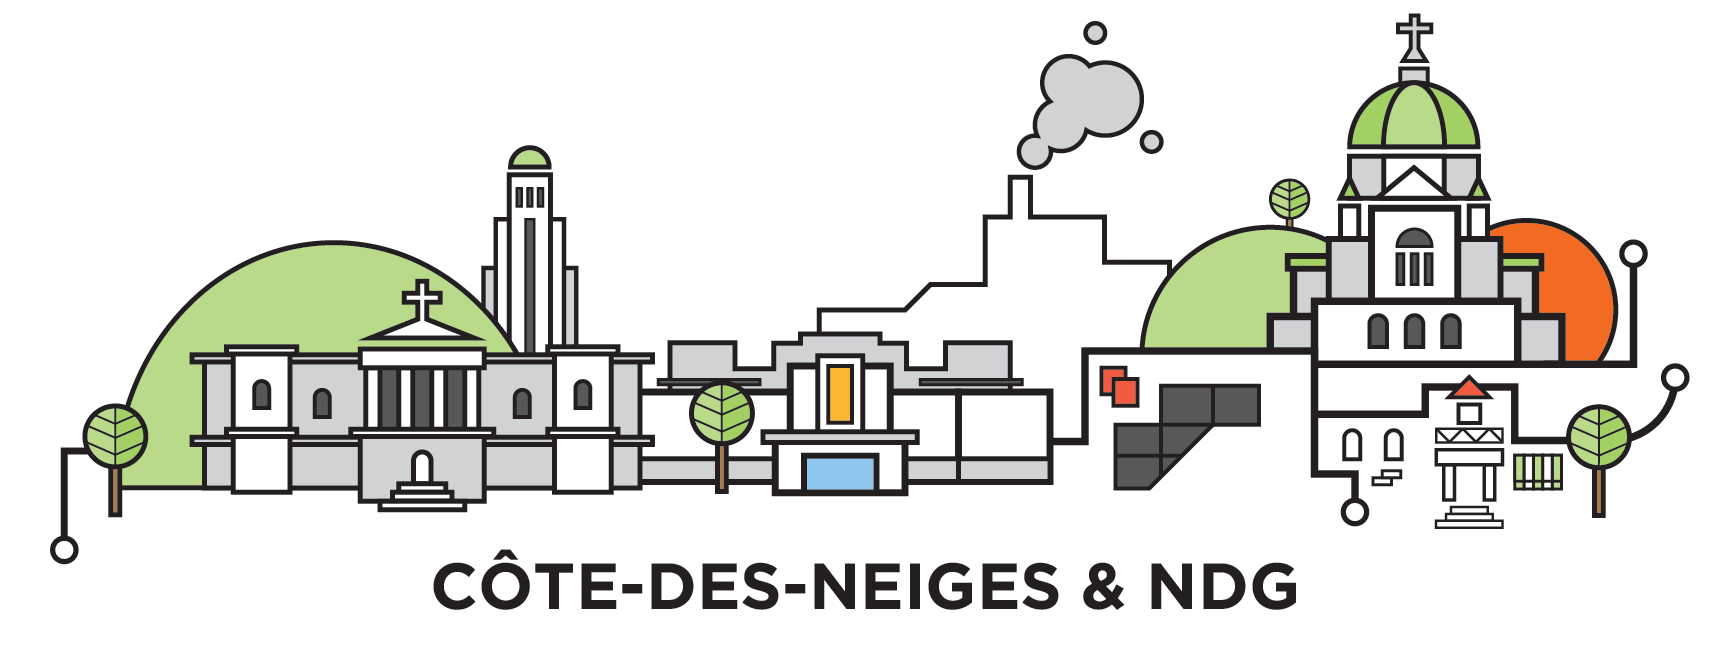 mtl-cote-des-neiges-ndg-cityline-illustration-by-loogart